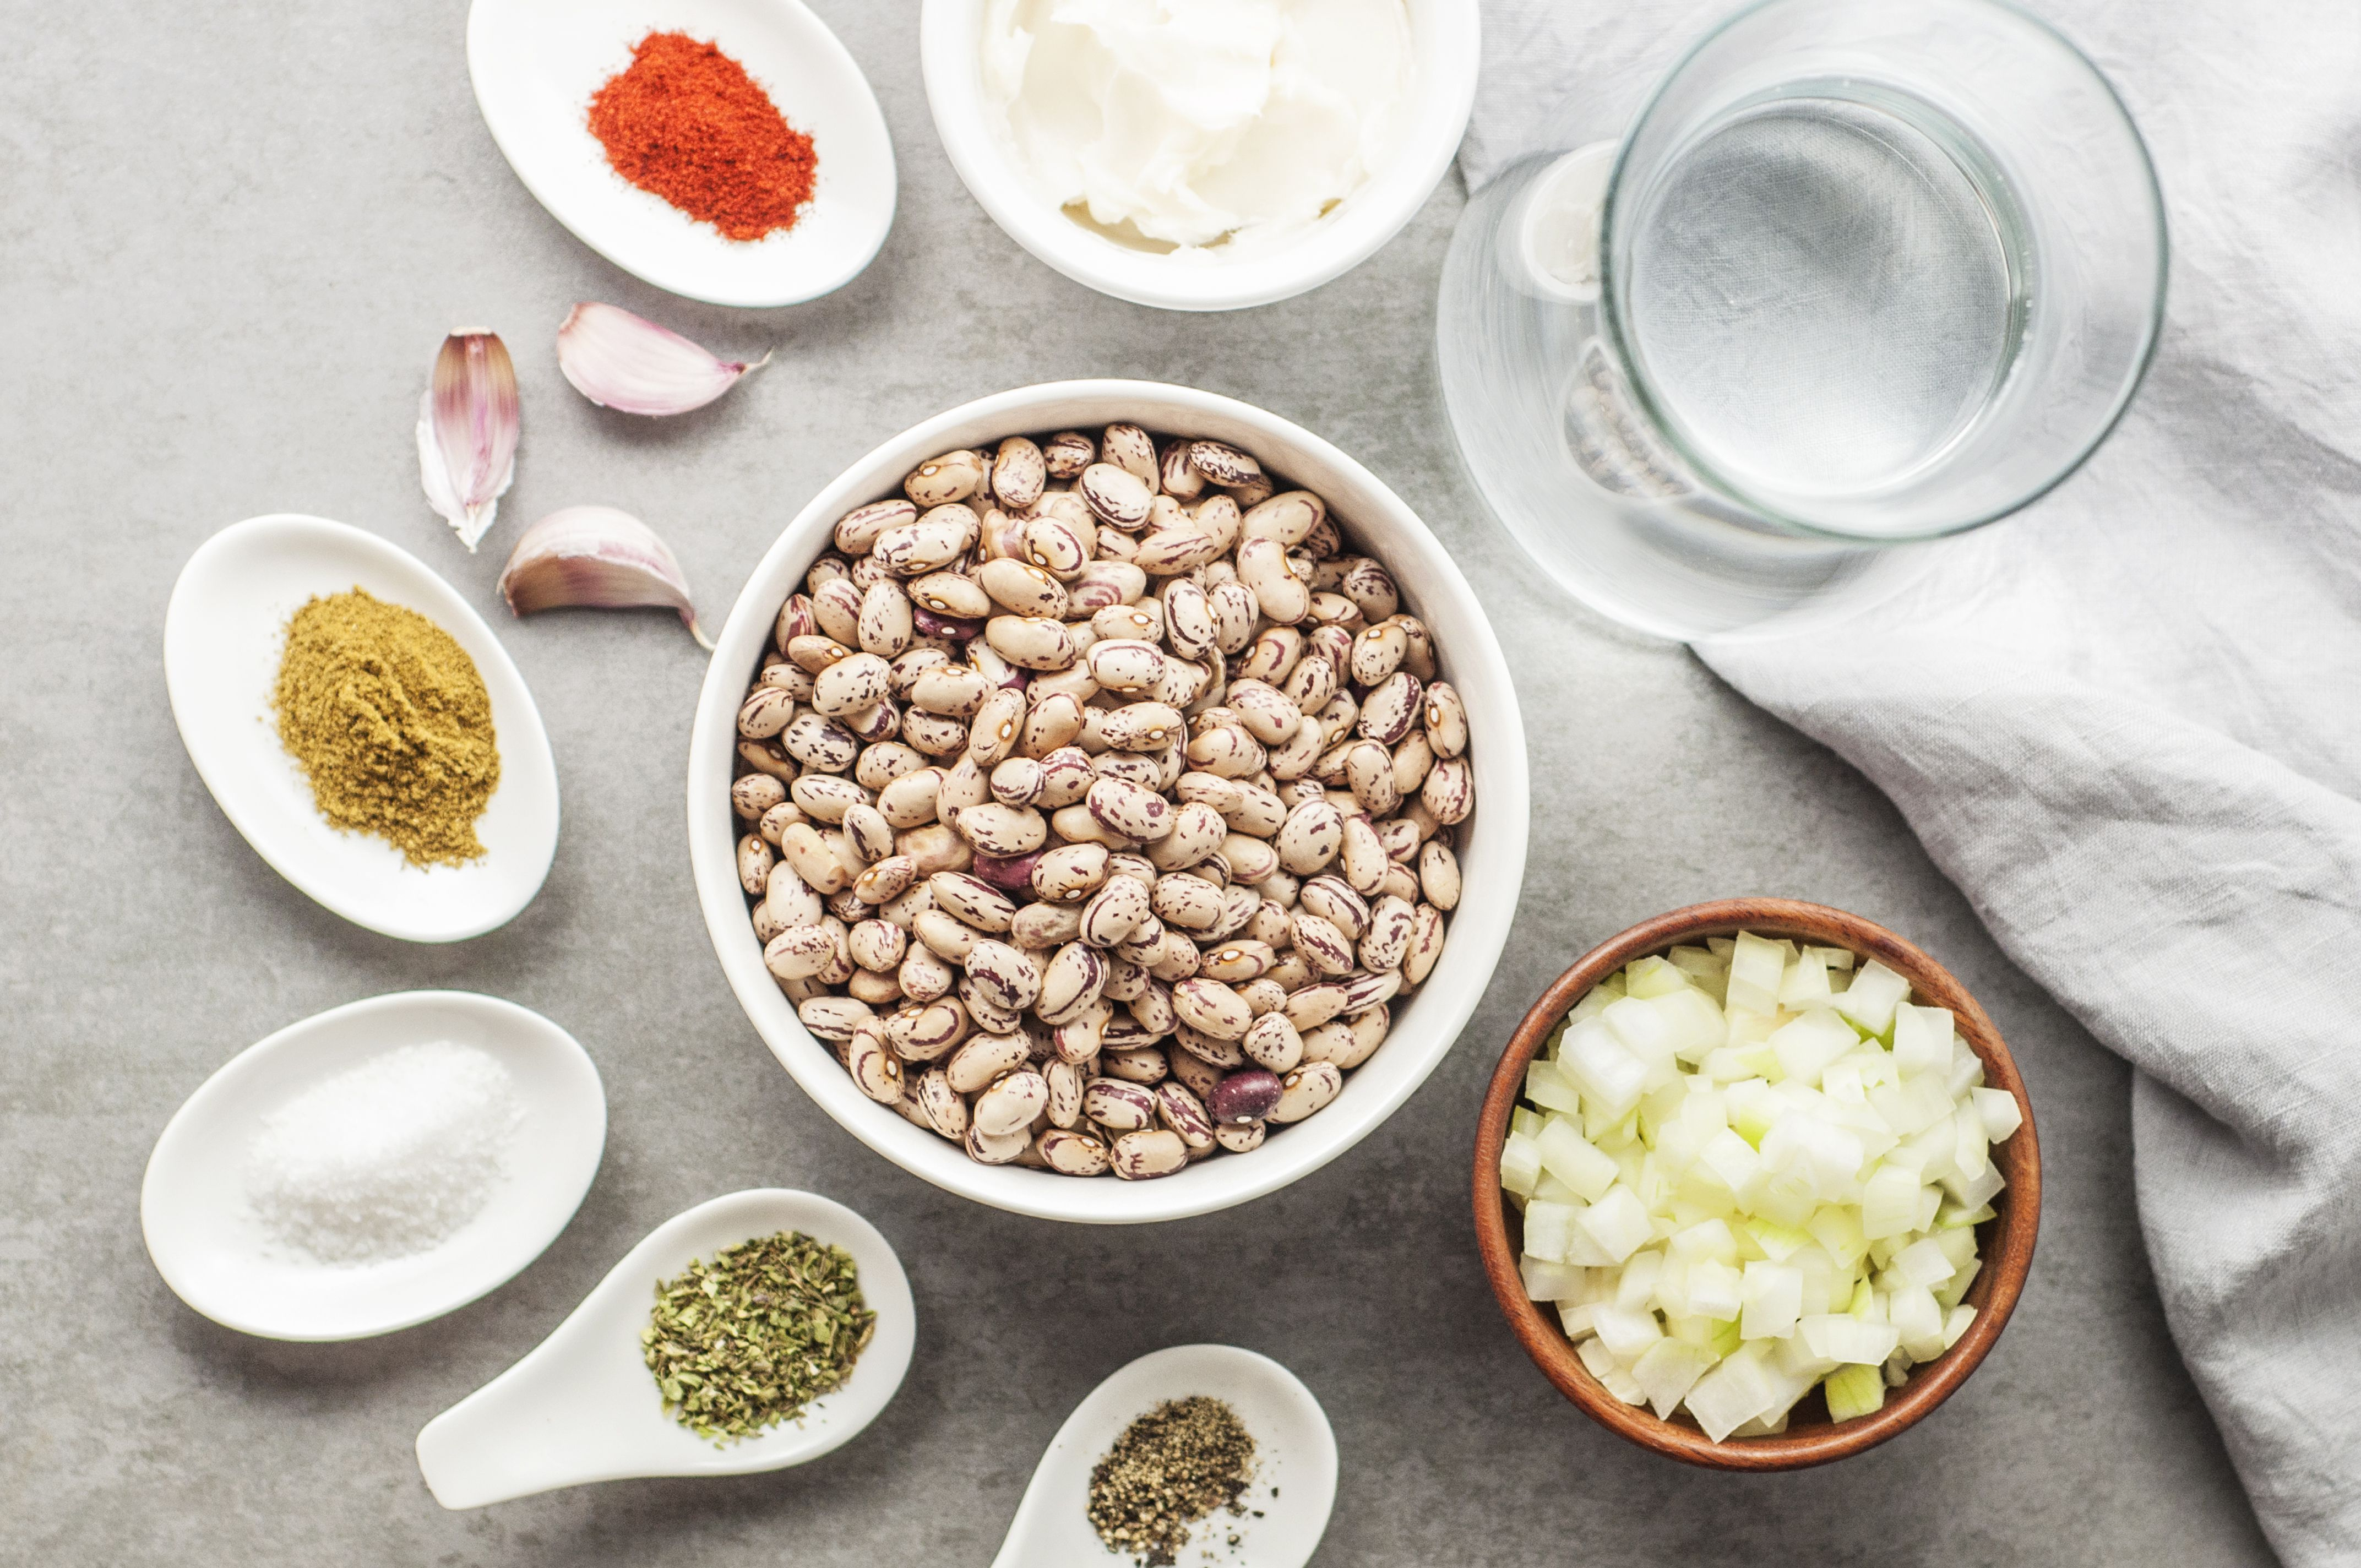 Ingredients for Instant Pot refried beans